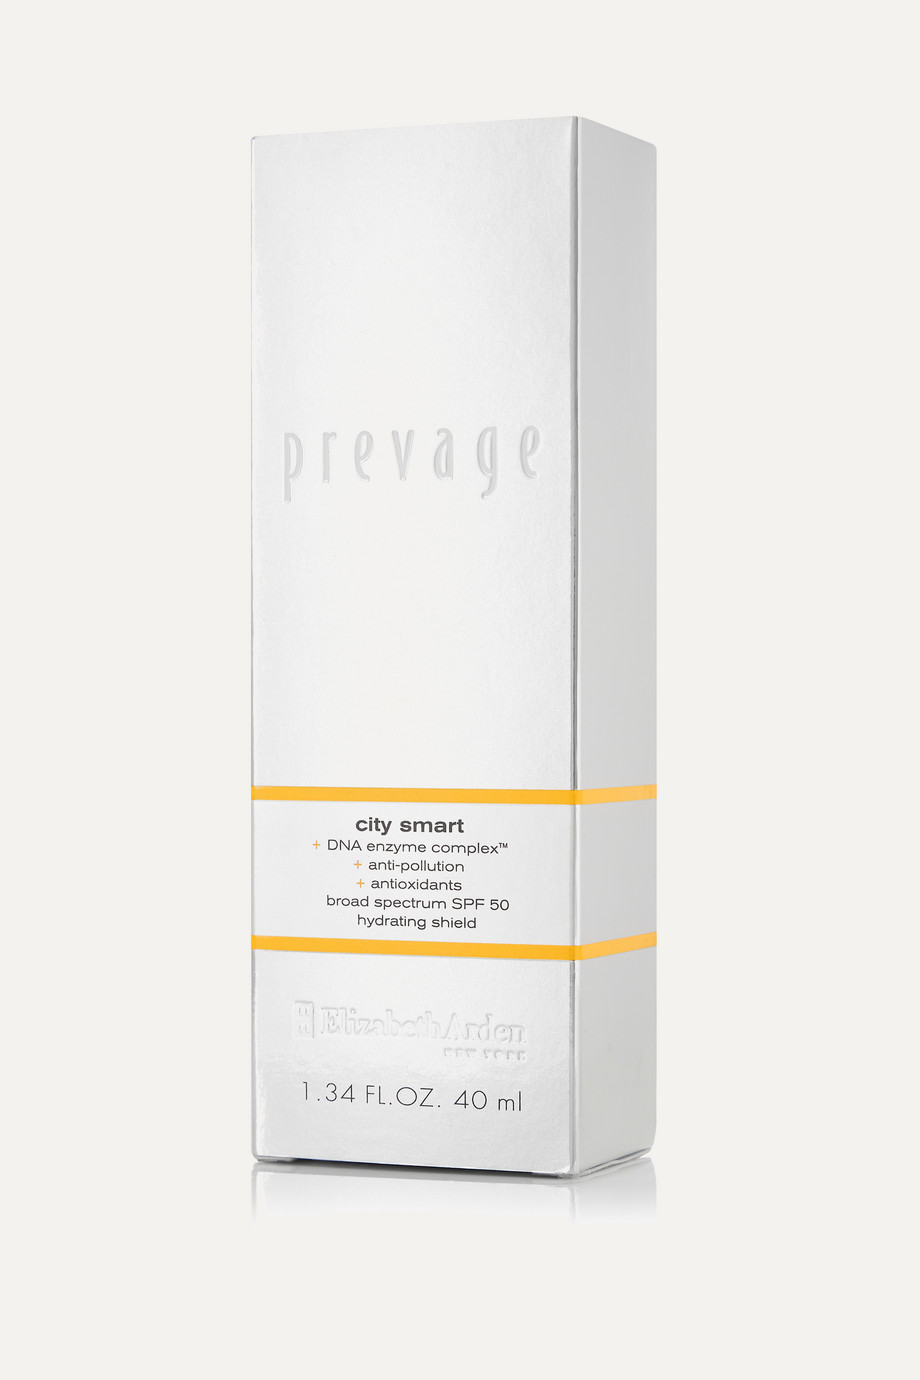 Elizabeth Arden PREVAGE® City Smart LSF 50 Hydrating Shield, 40 ml – Sonnencreme für das Gesicht